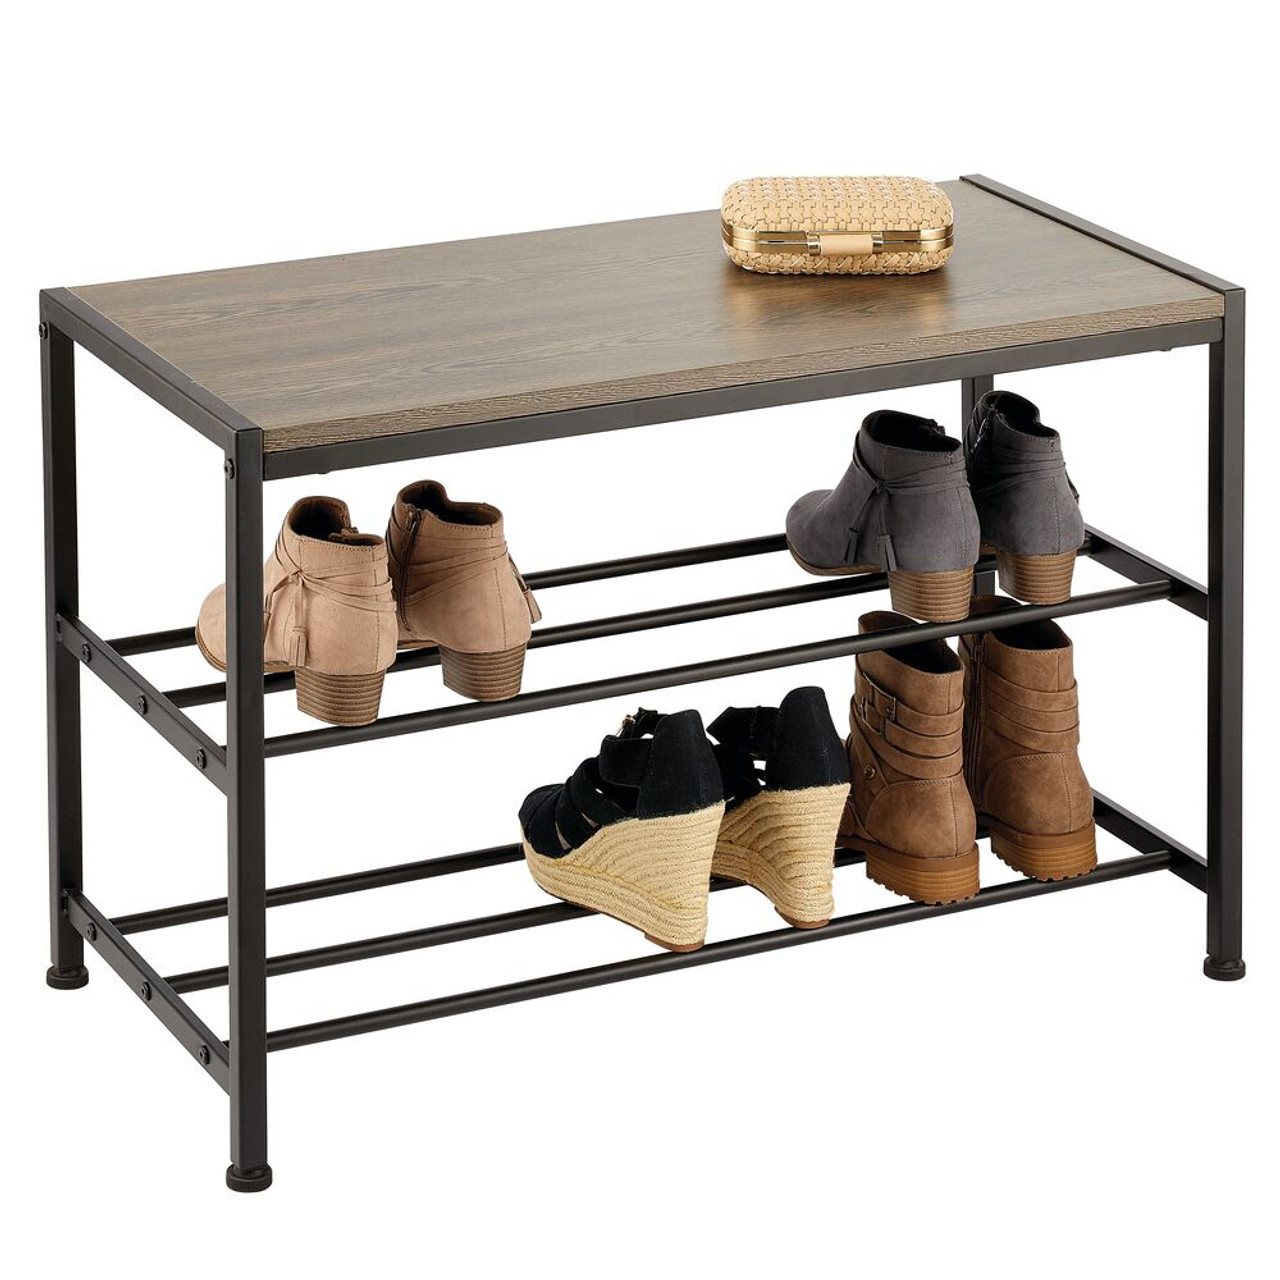 Metal And Wood Entryway Bench With Shoe Storage Black Grey,Diy Christmas Decorations For Your Room